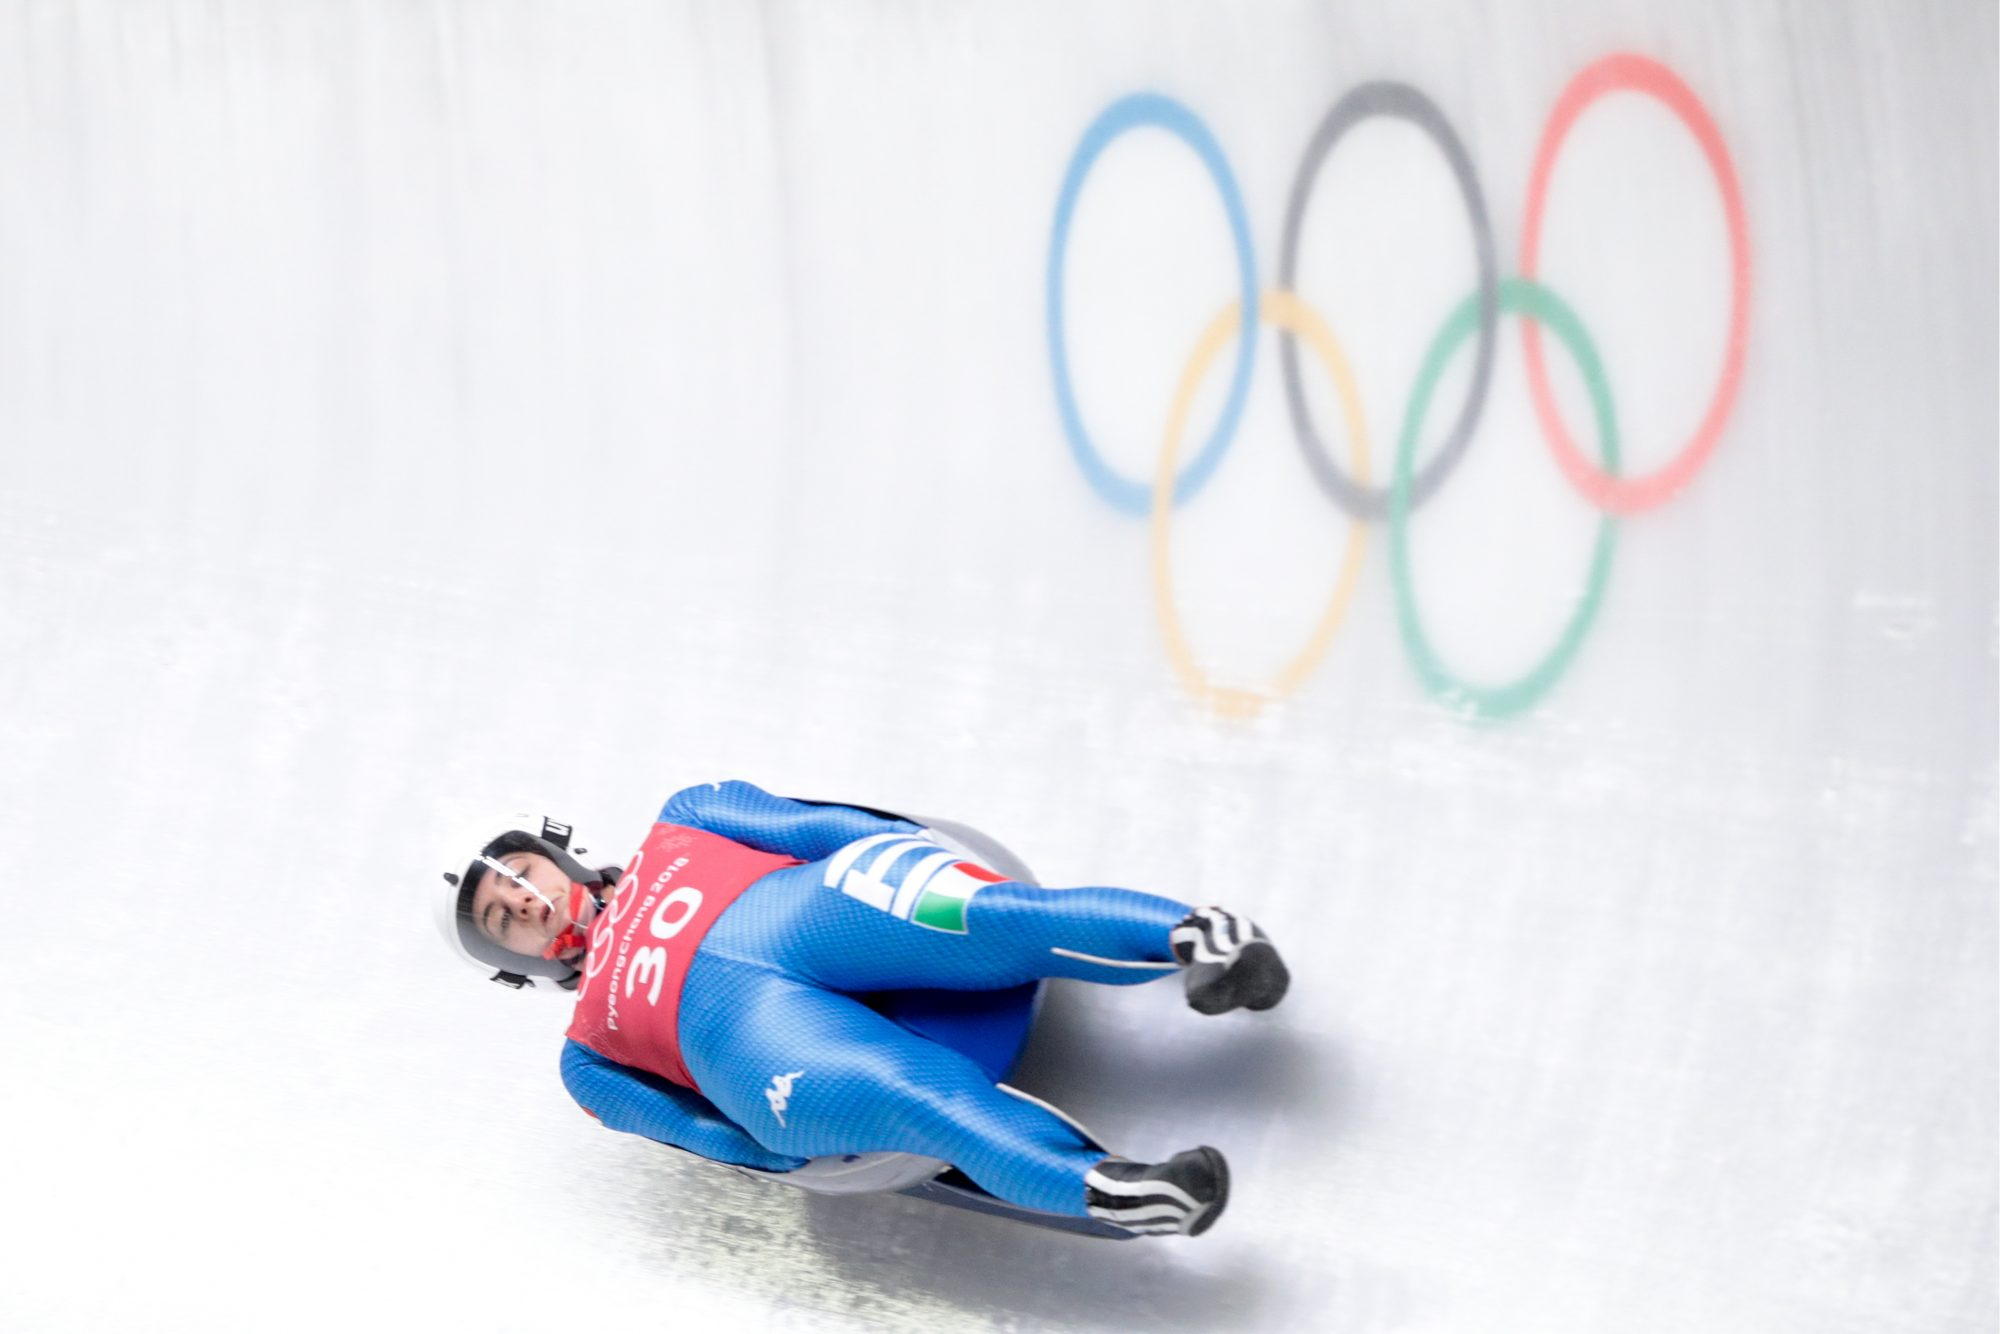 Image of Olympic luger